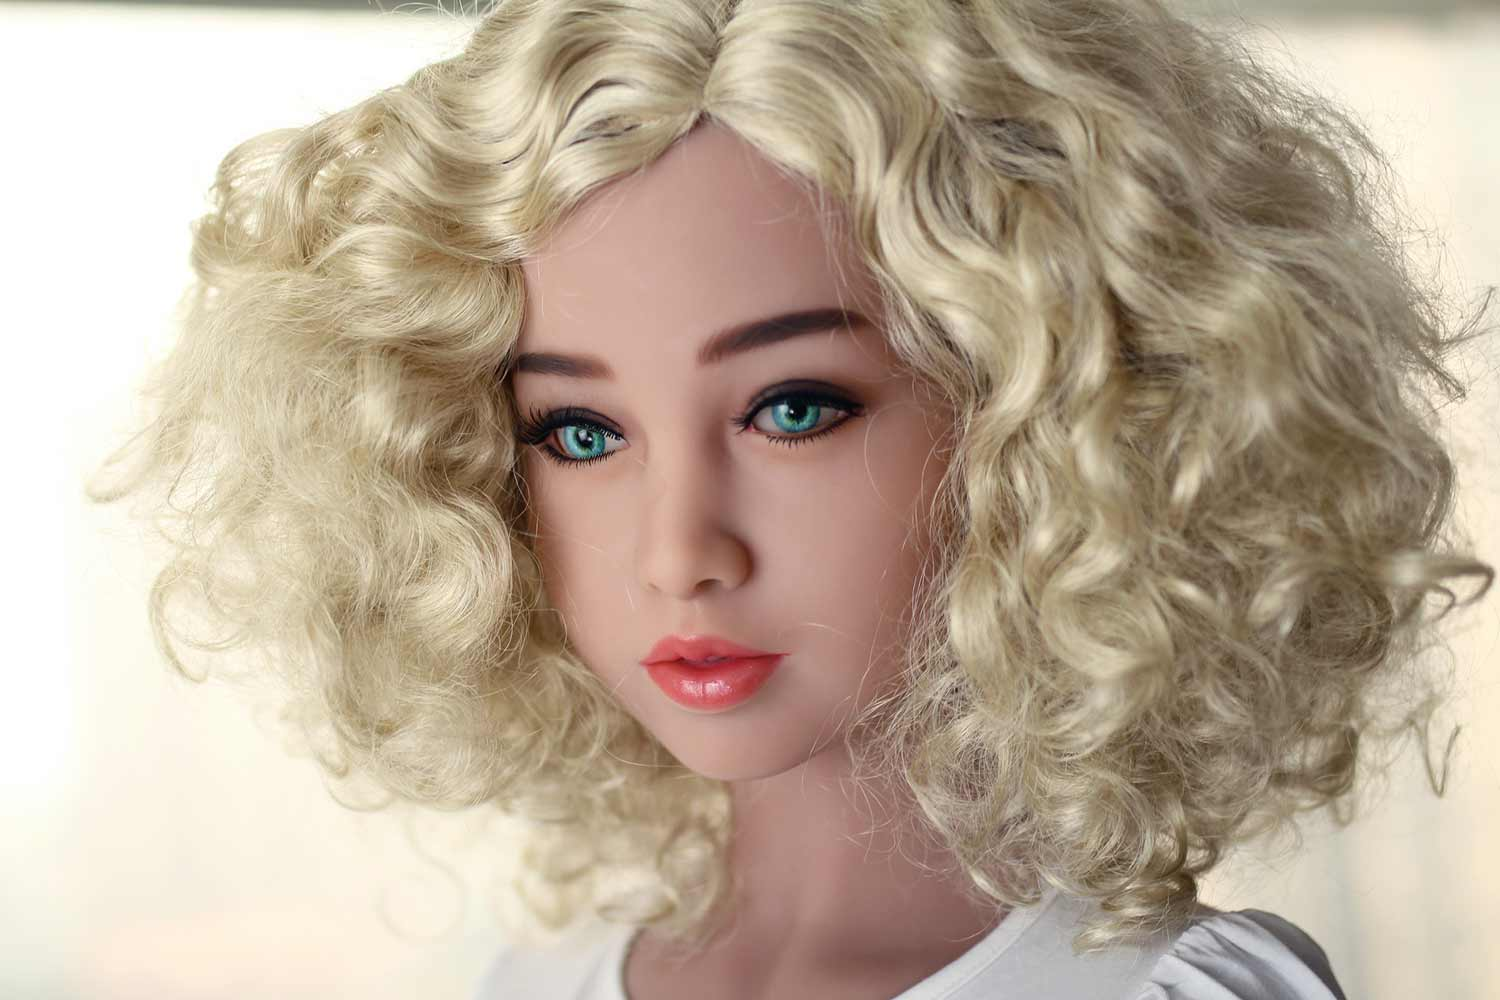 Sex doll with pink lips